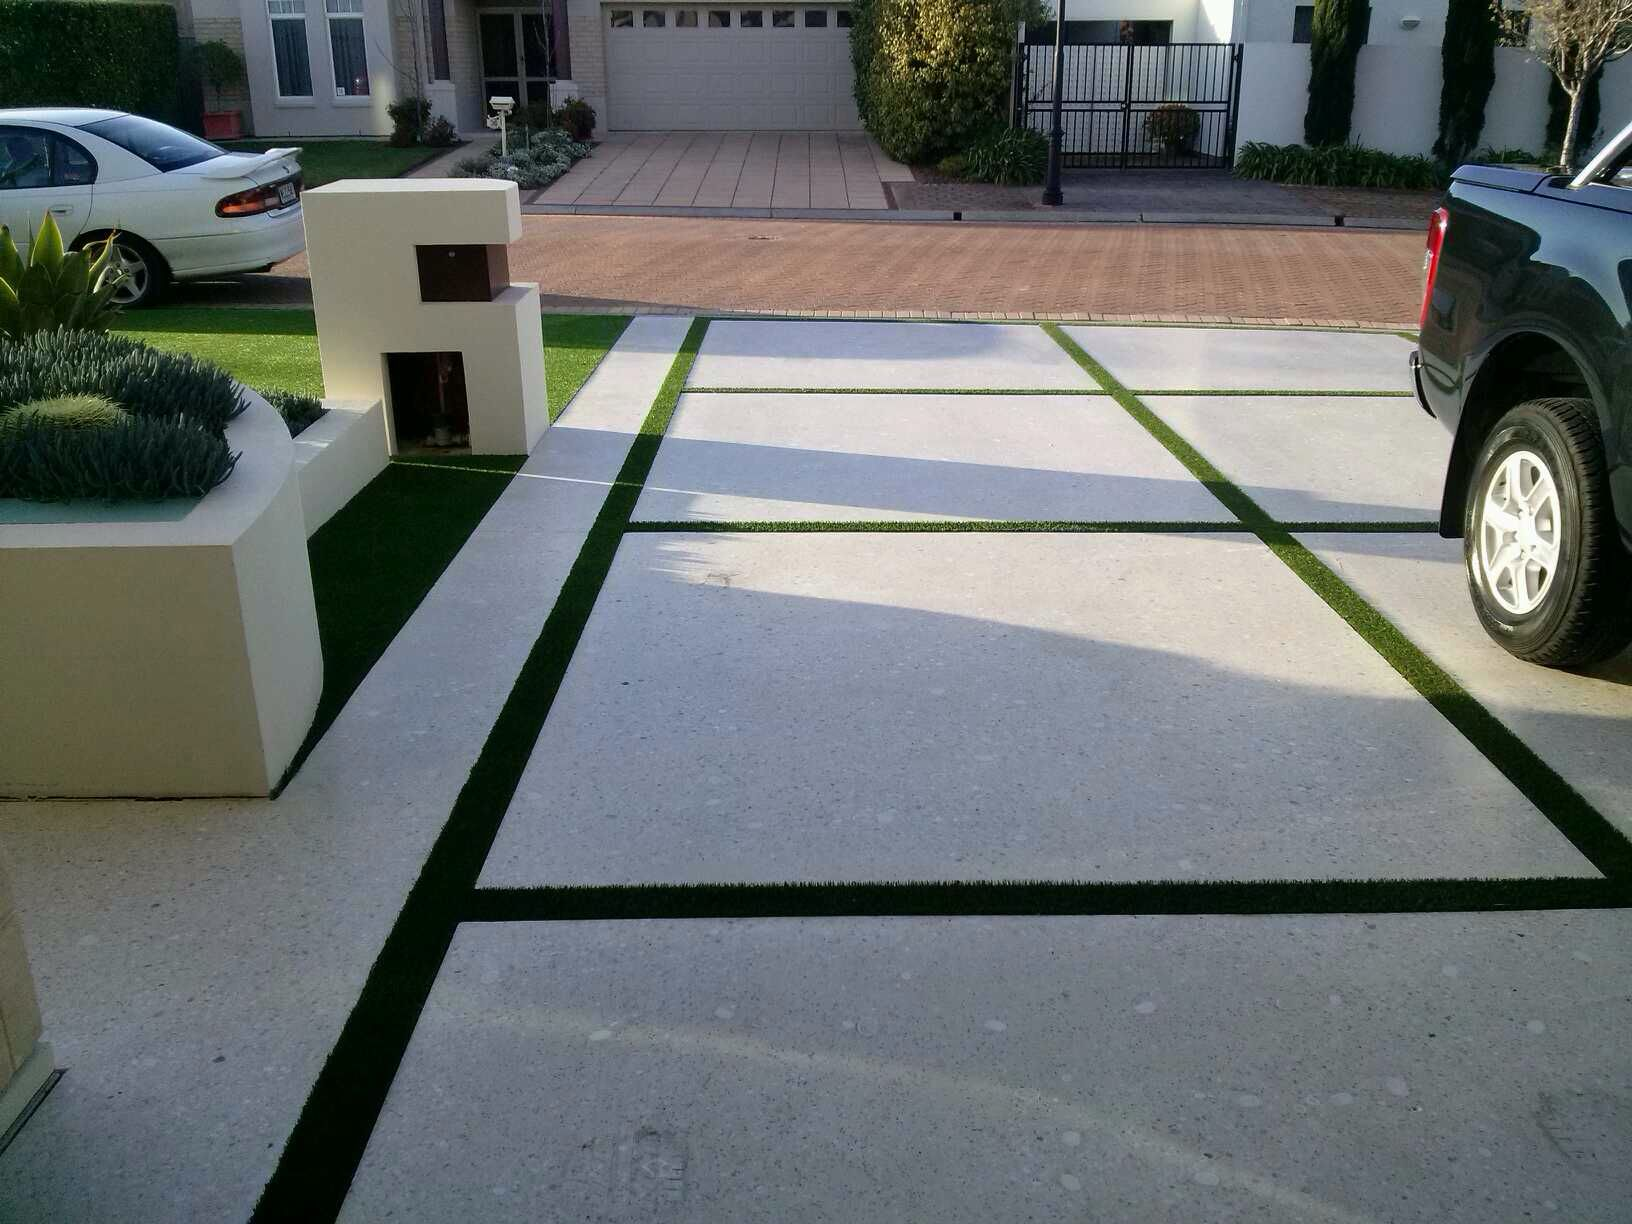 Pin by Carrie Parker on AG Ideas | Concrete backyard ... on Backyard Ideas Concrete And Grass id=97390